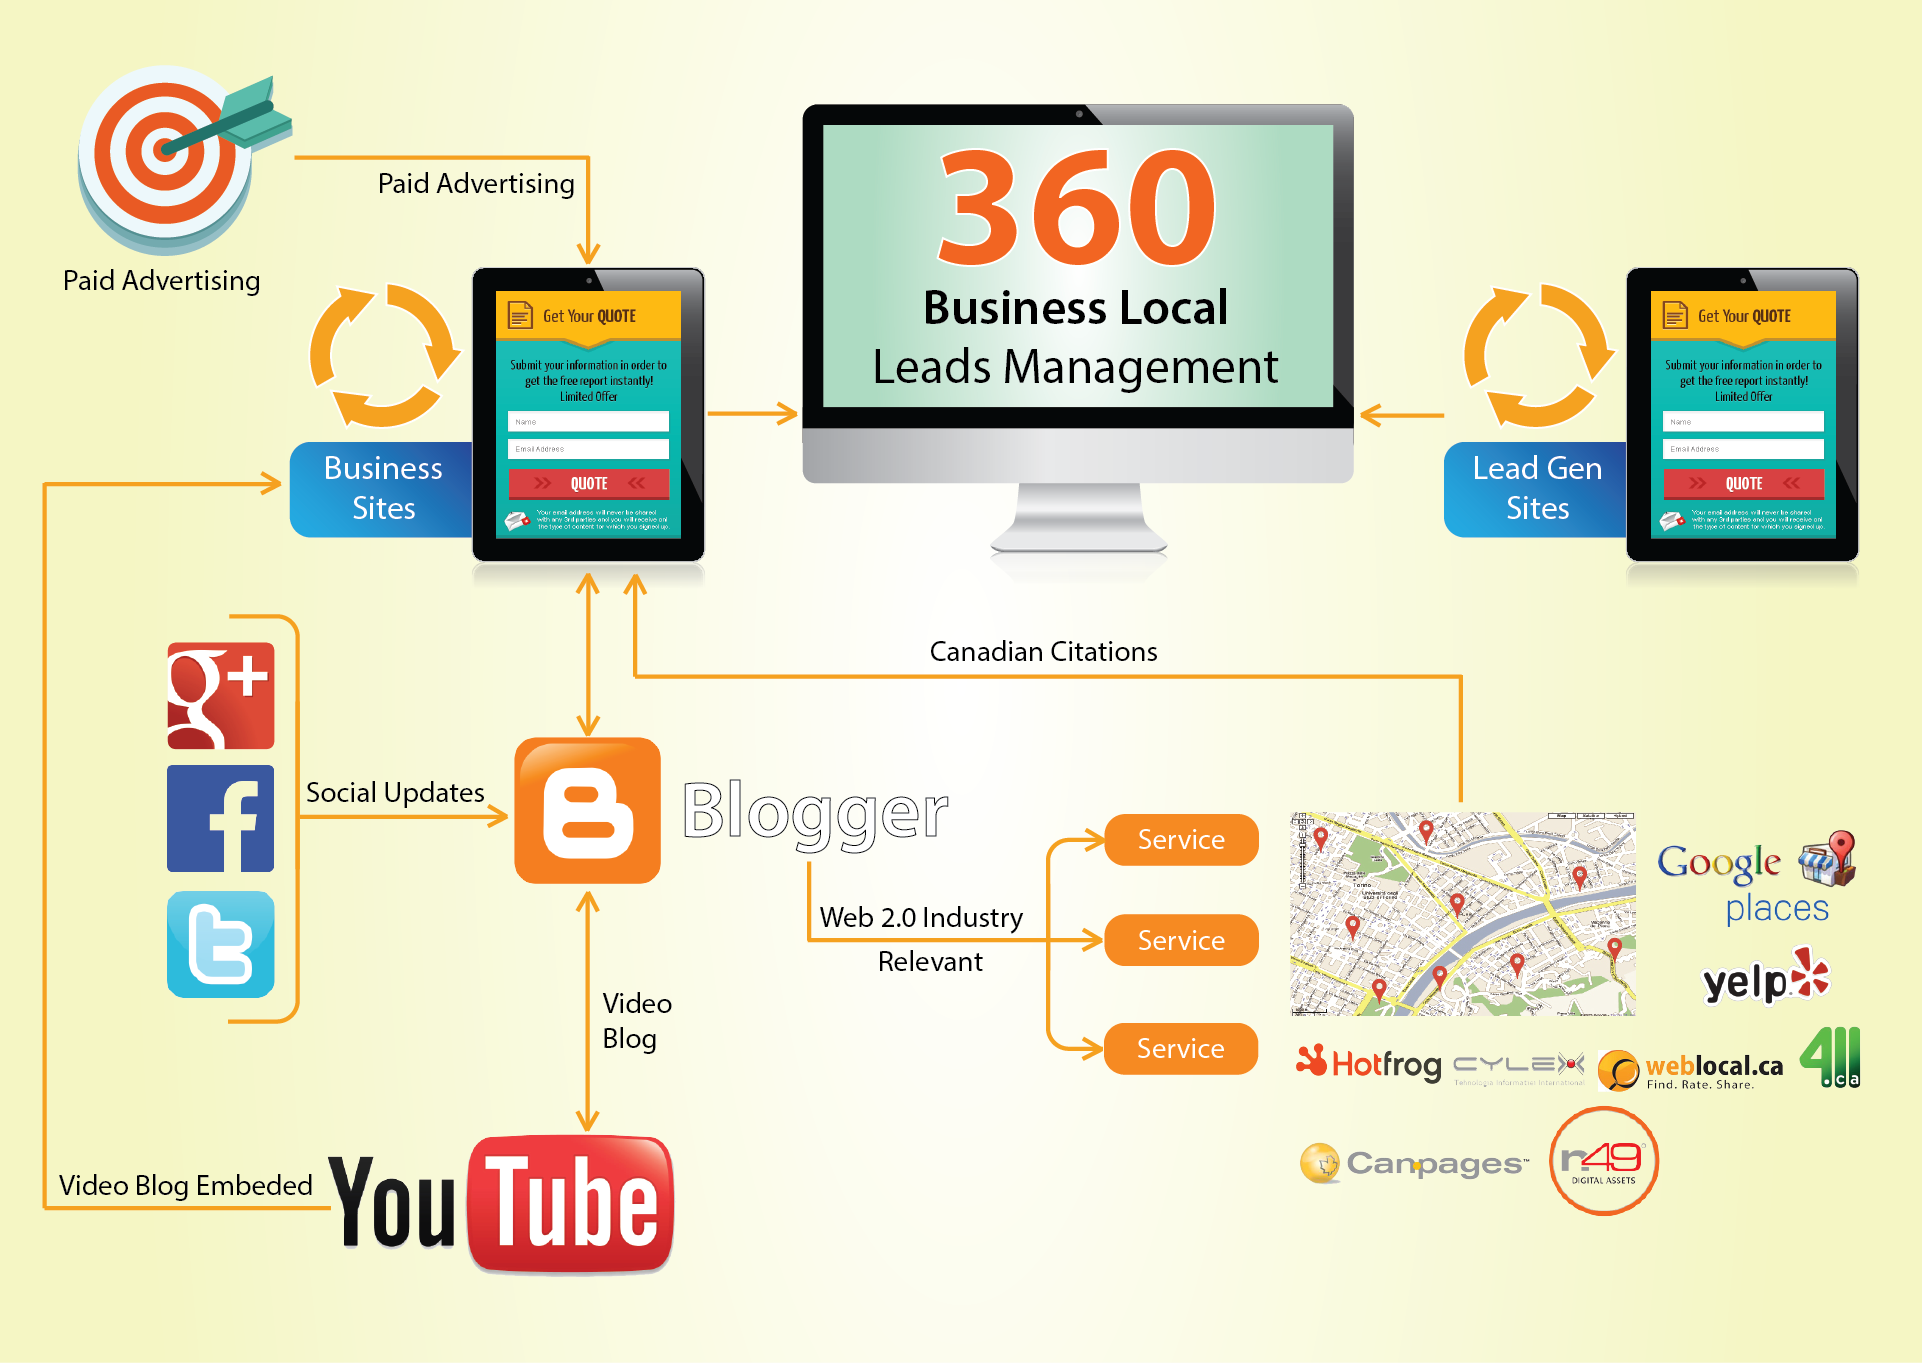 Business Local Leads Management